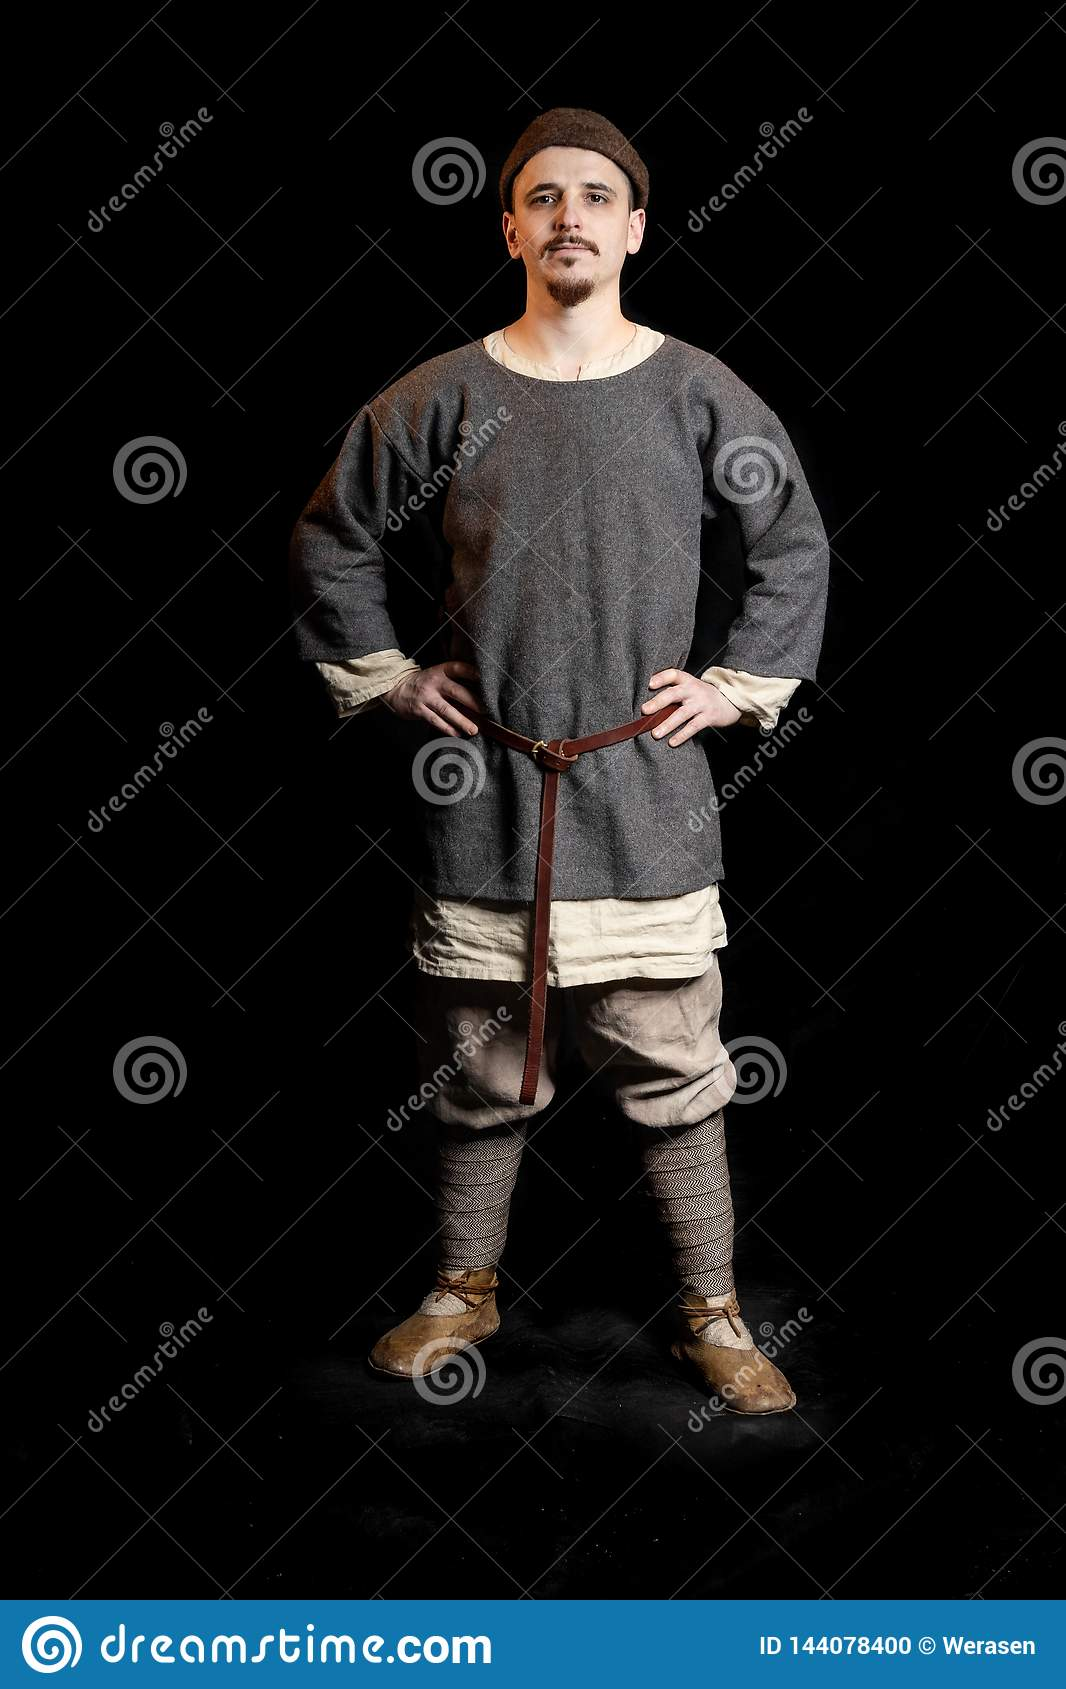 young man in casual gray clothes and a hat of the Viking Age looks serious, hands on hips